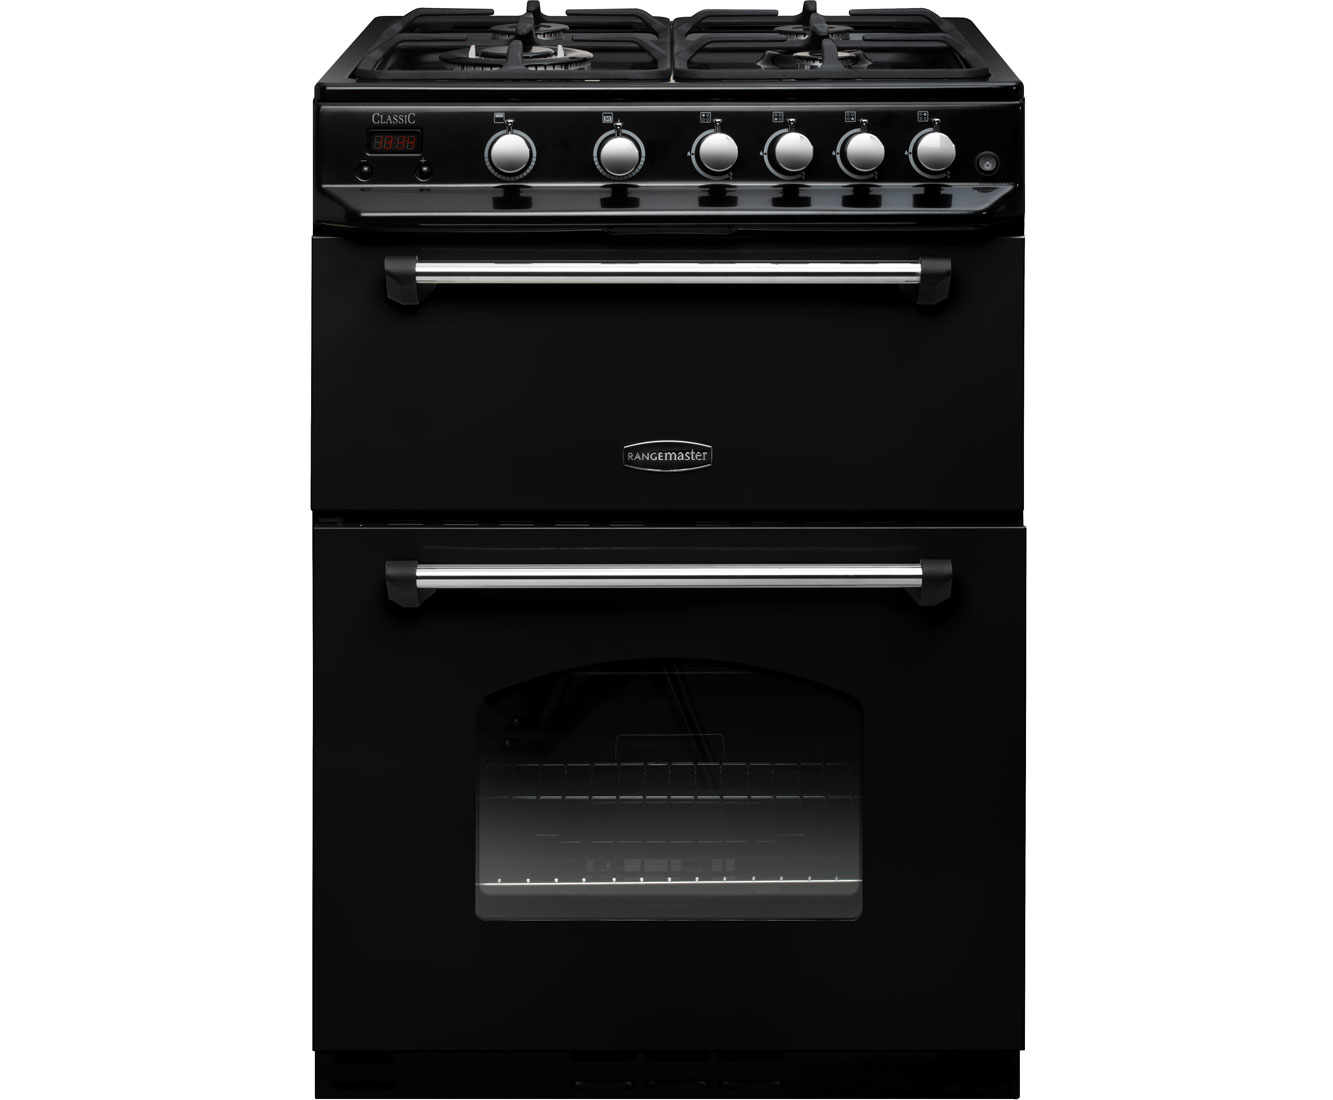 Rangemaster Classic 60 CLAS60NGFBLC Free Standing Cooker in Black  Chrome